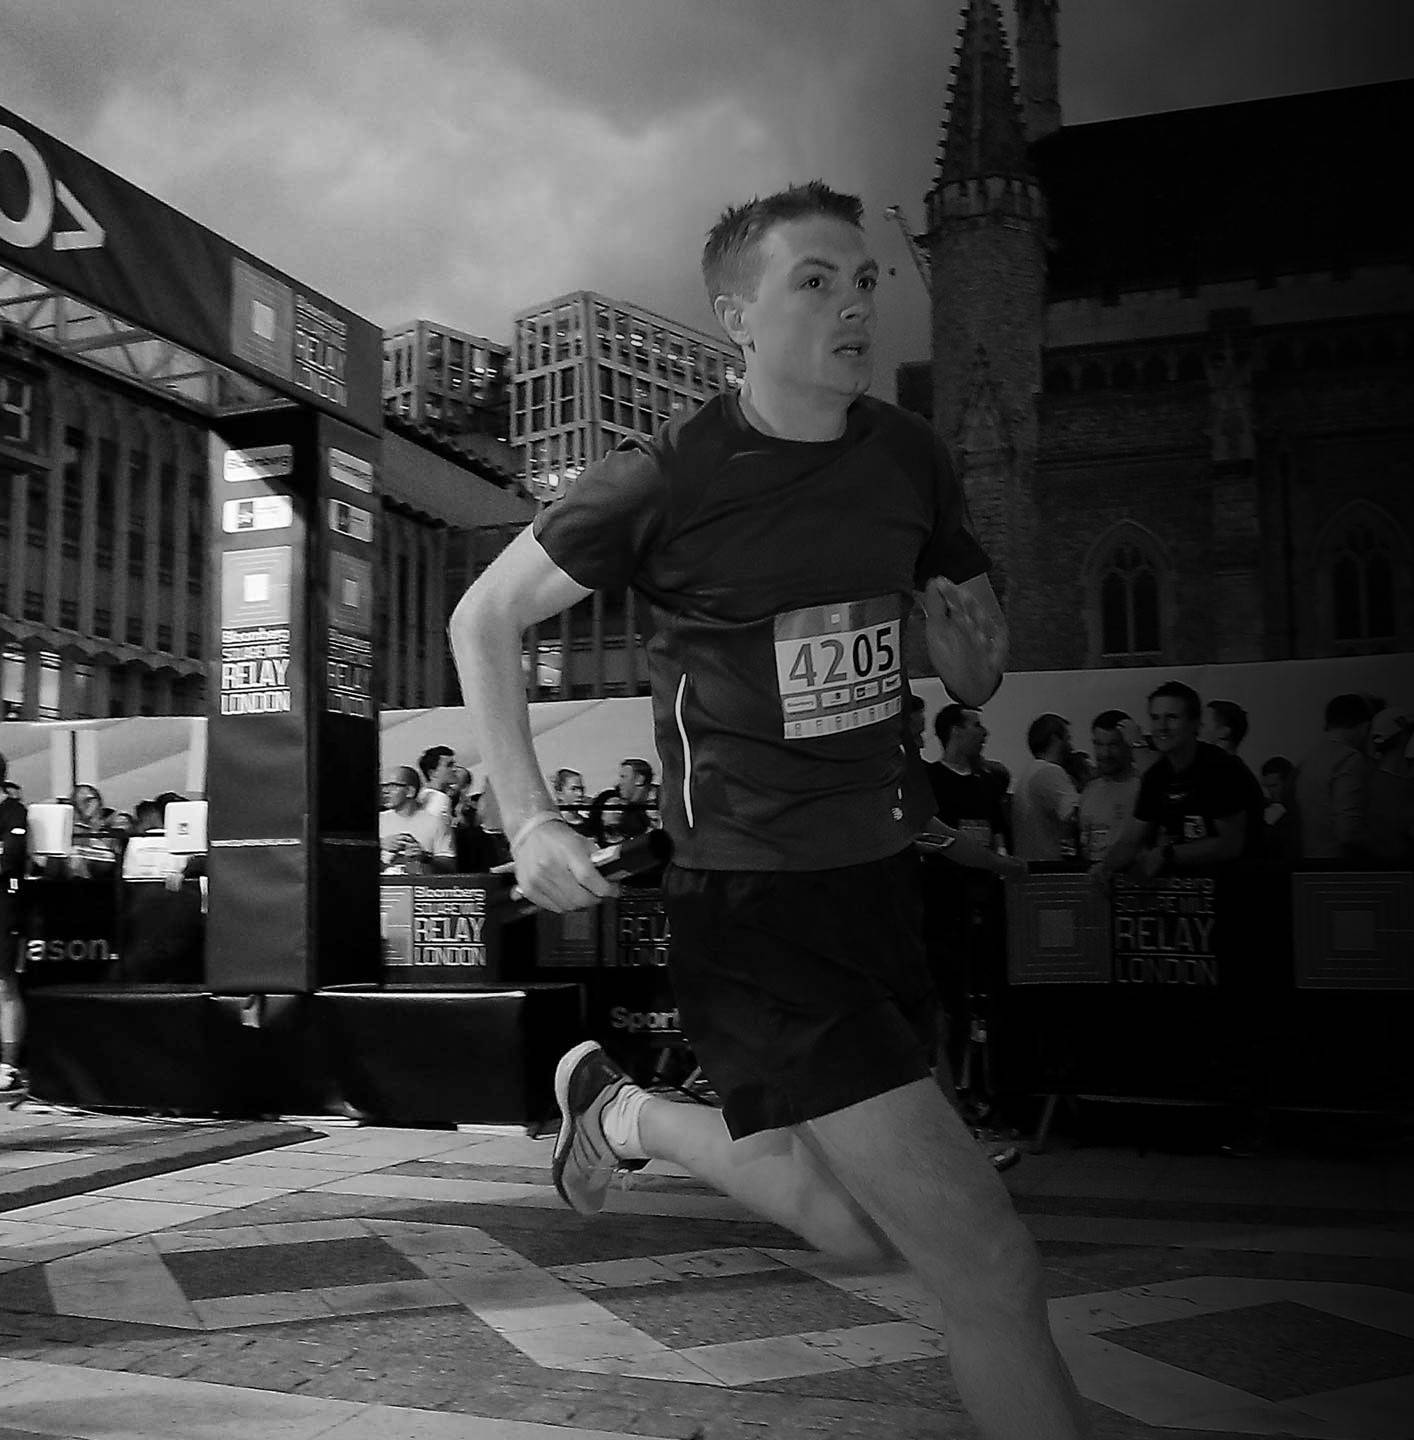 London firms promote health and wellbeing with Square Mile Relay